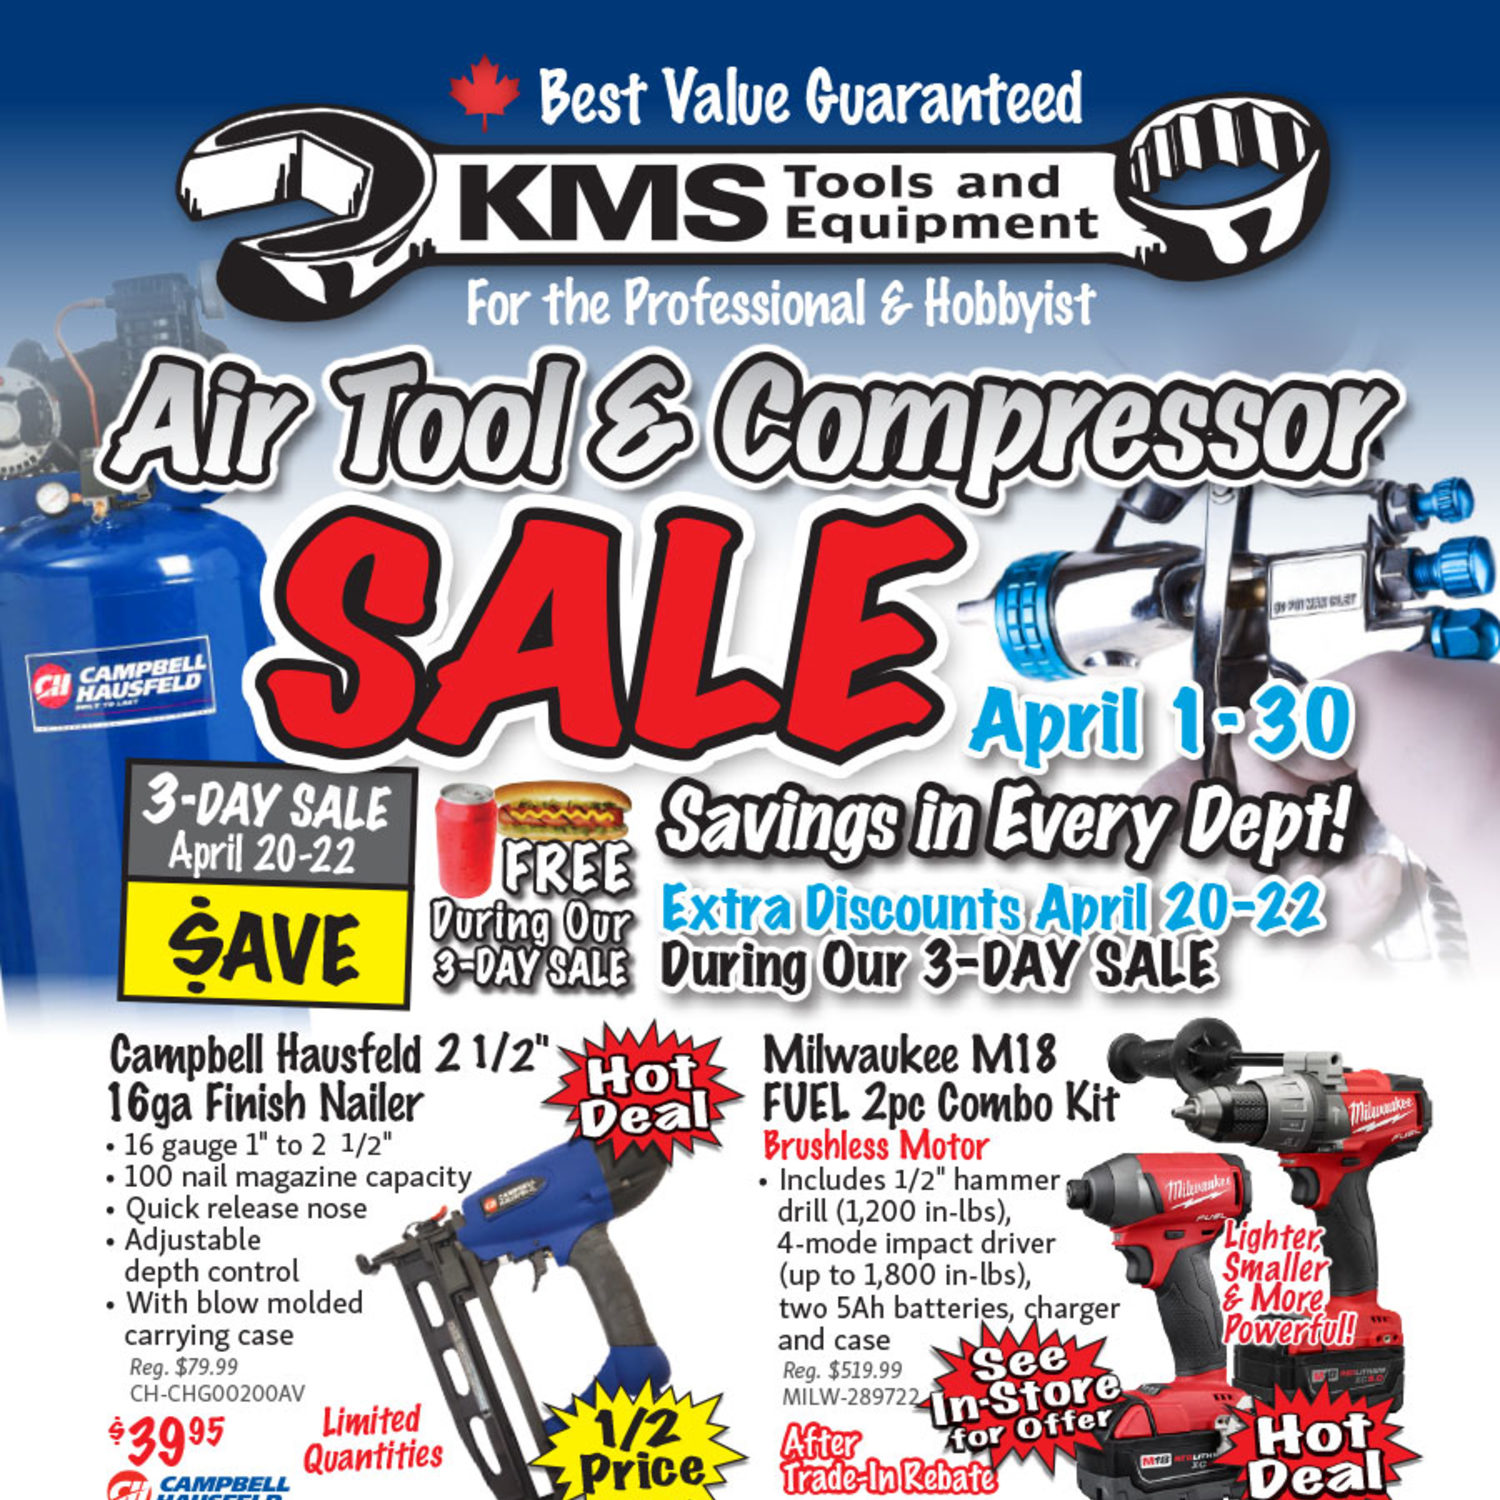 Kms Tools Weekly Flyer Air Tool Compressor Sale Apr 1 30 Need Plug Hook Up Diagram For 220 Ingersoll Rand 2475n75 Type